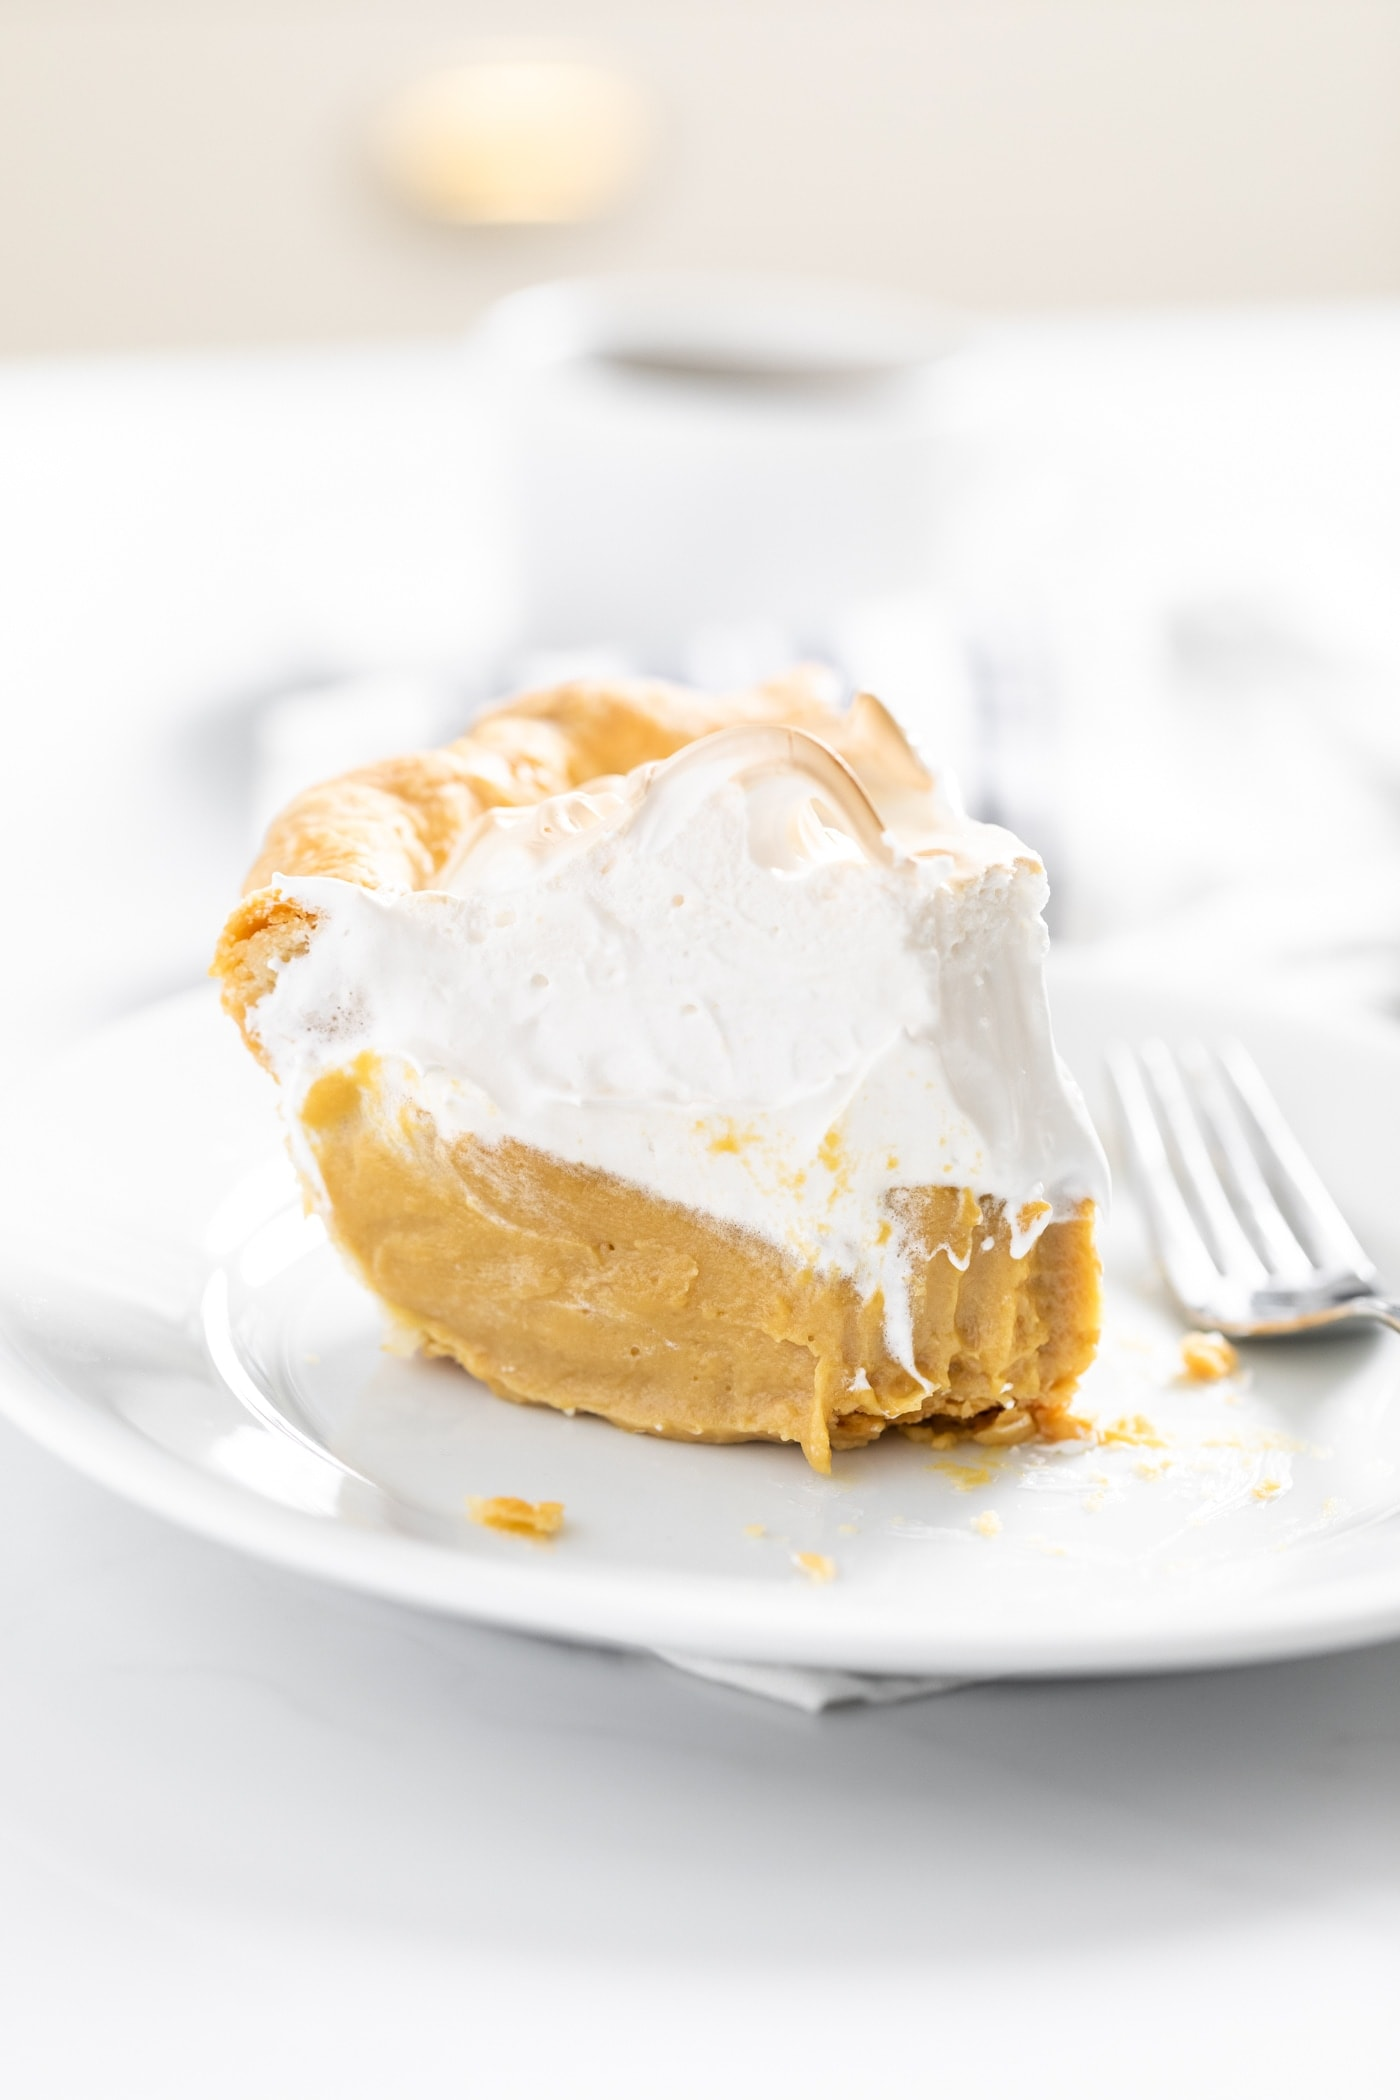 Close up view of piece of butterscotch pie topped with creme brûlée frosting sitting on white plate all on white countertop with mug in background